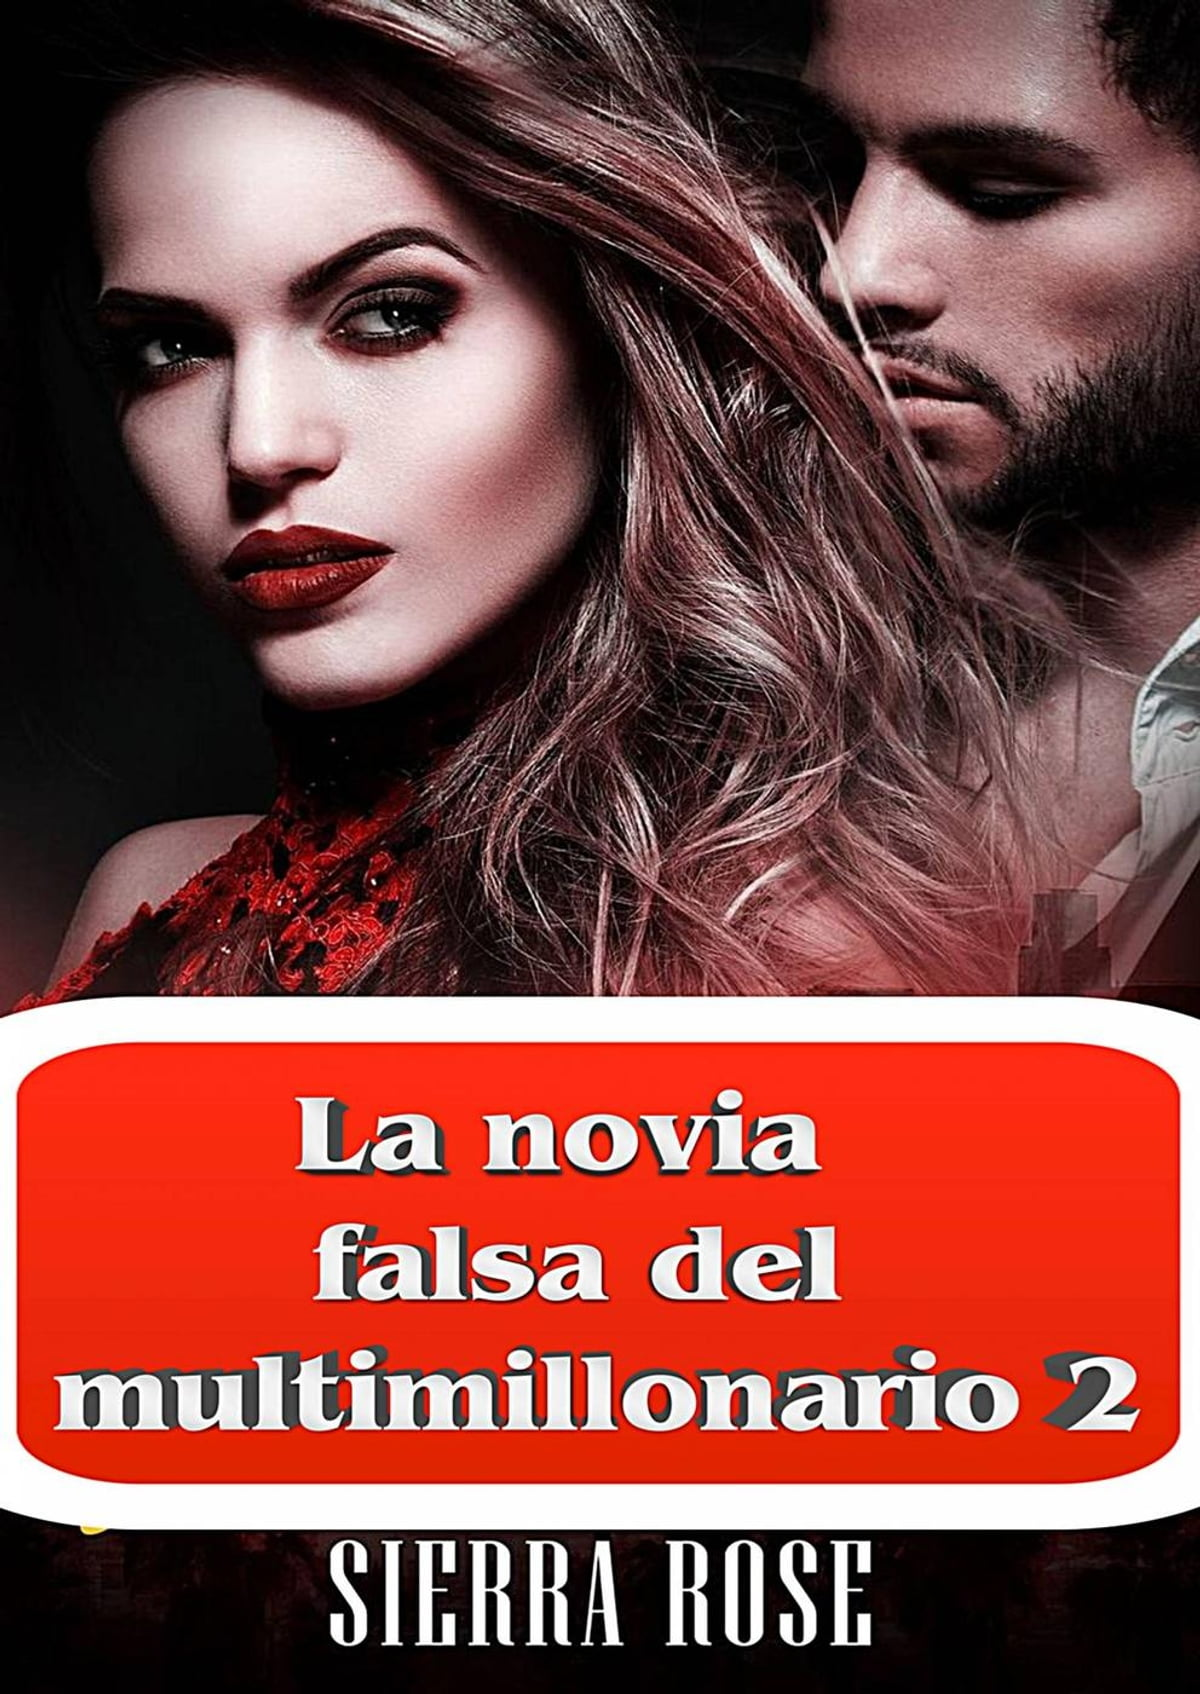 Sierra Rose La Novia Falsa Del Multimillonario Libro 2 La Novia Falsa Del Multimillonario 2 Ebook De Sierra Rose